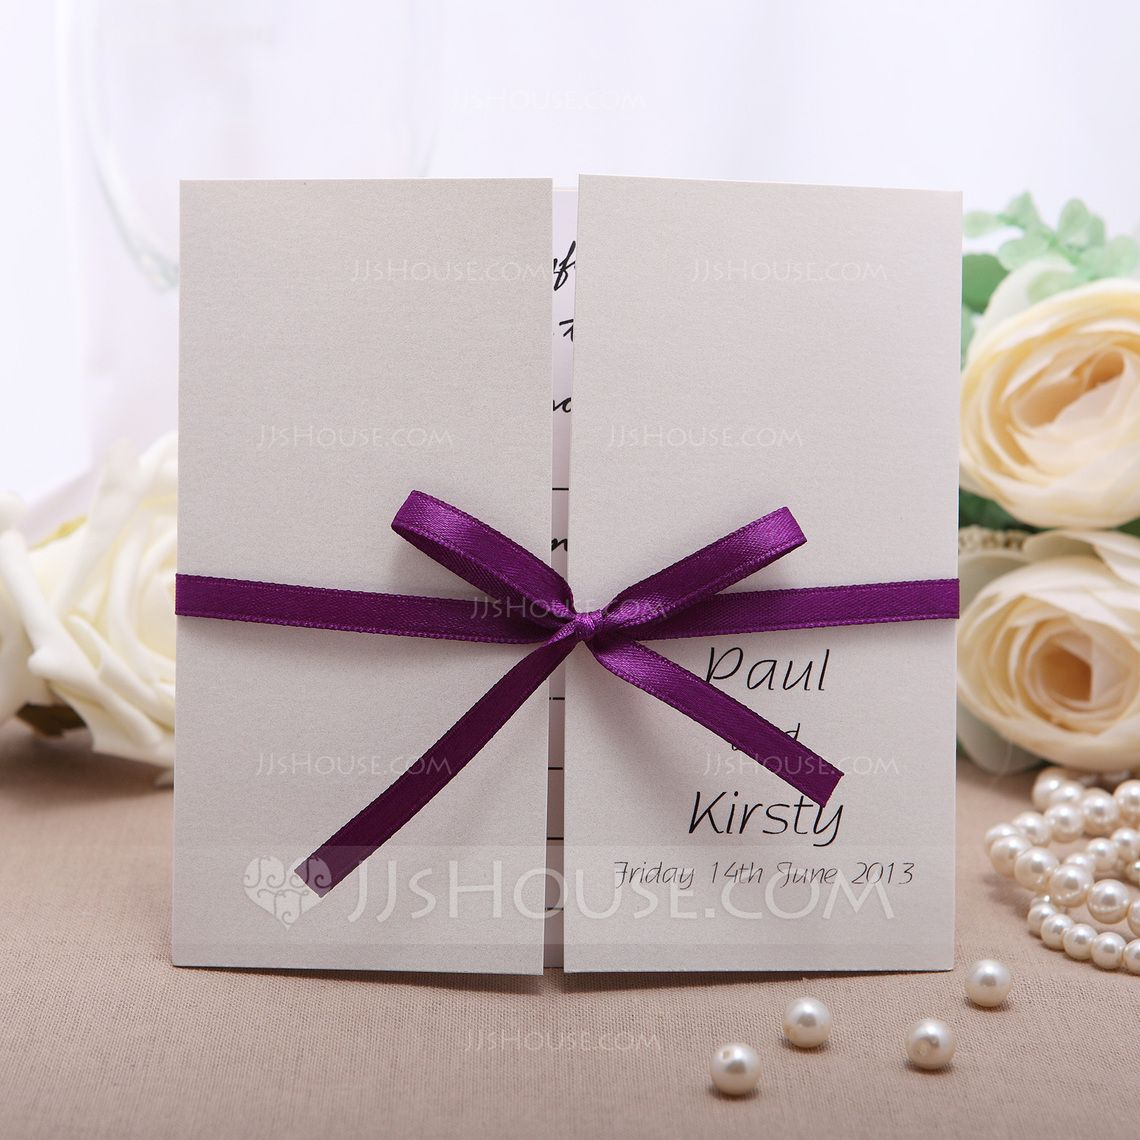 Personalized Formal Style GateFold Invitation Cards With Ribbons – Fall or Winter Theme Invitation Cards